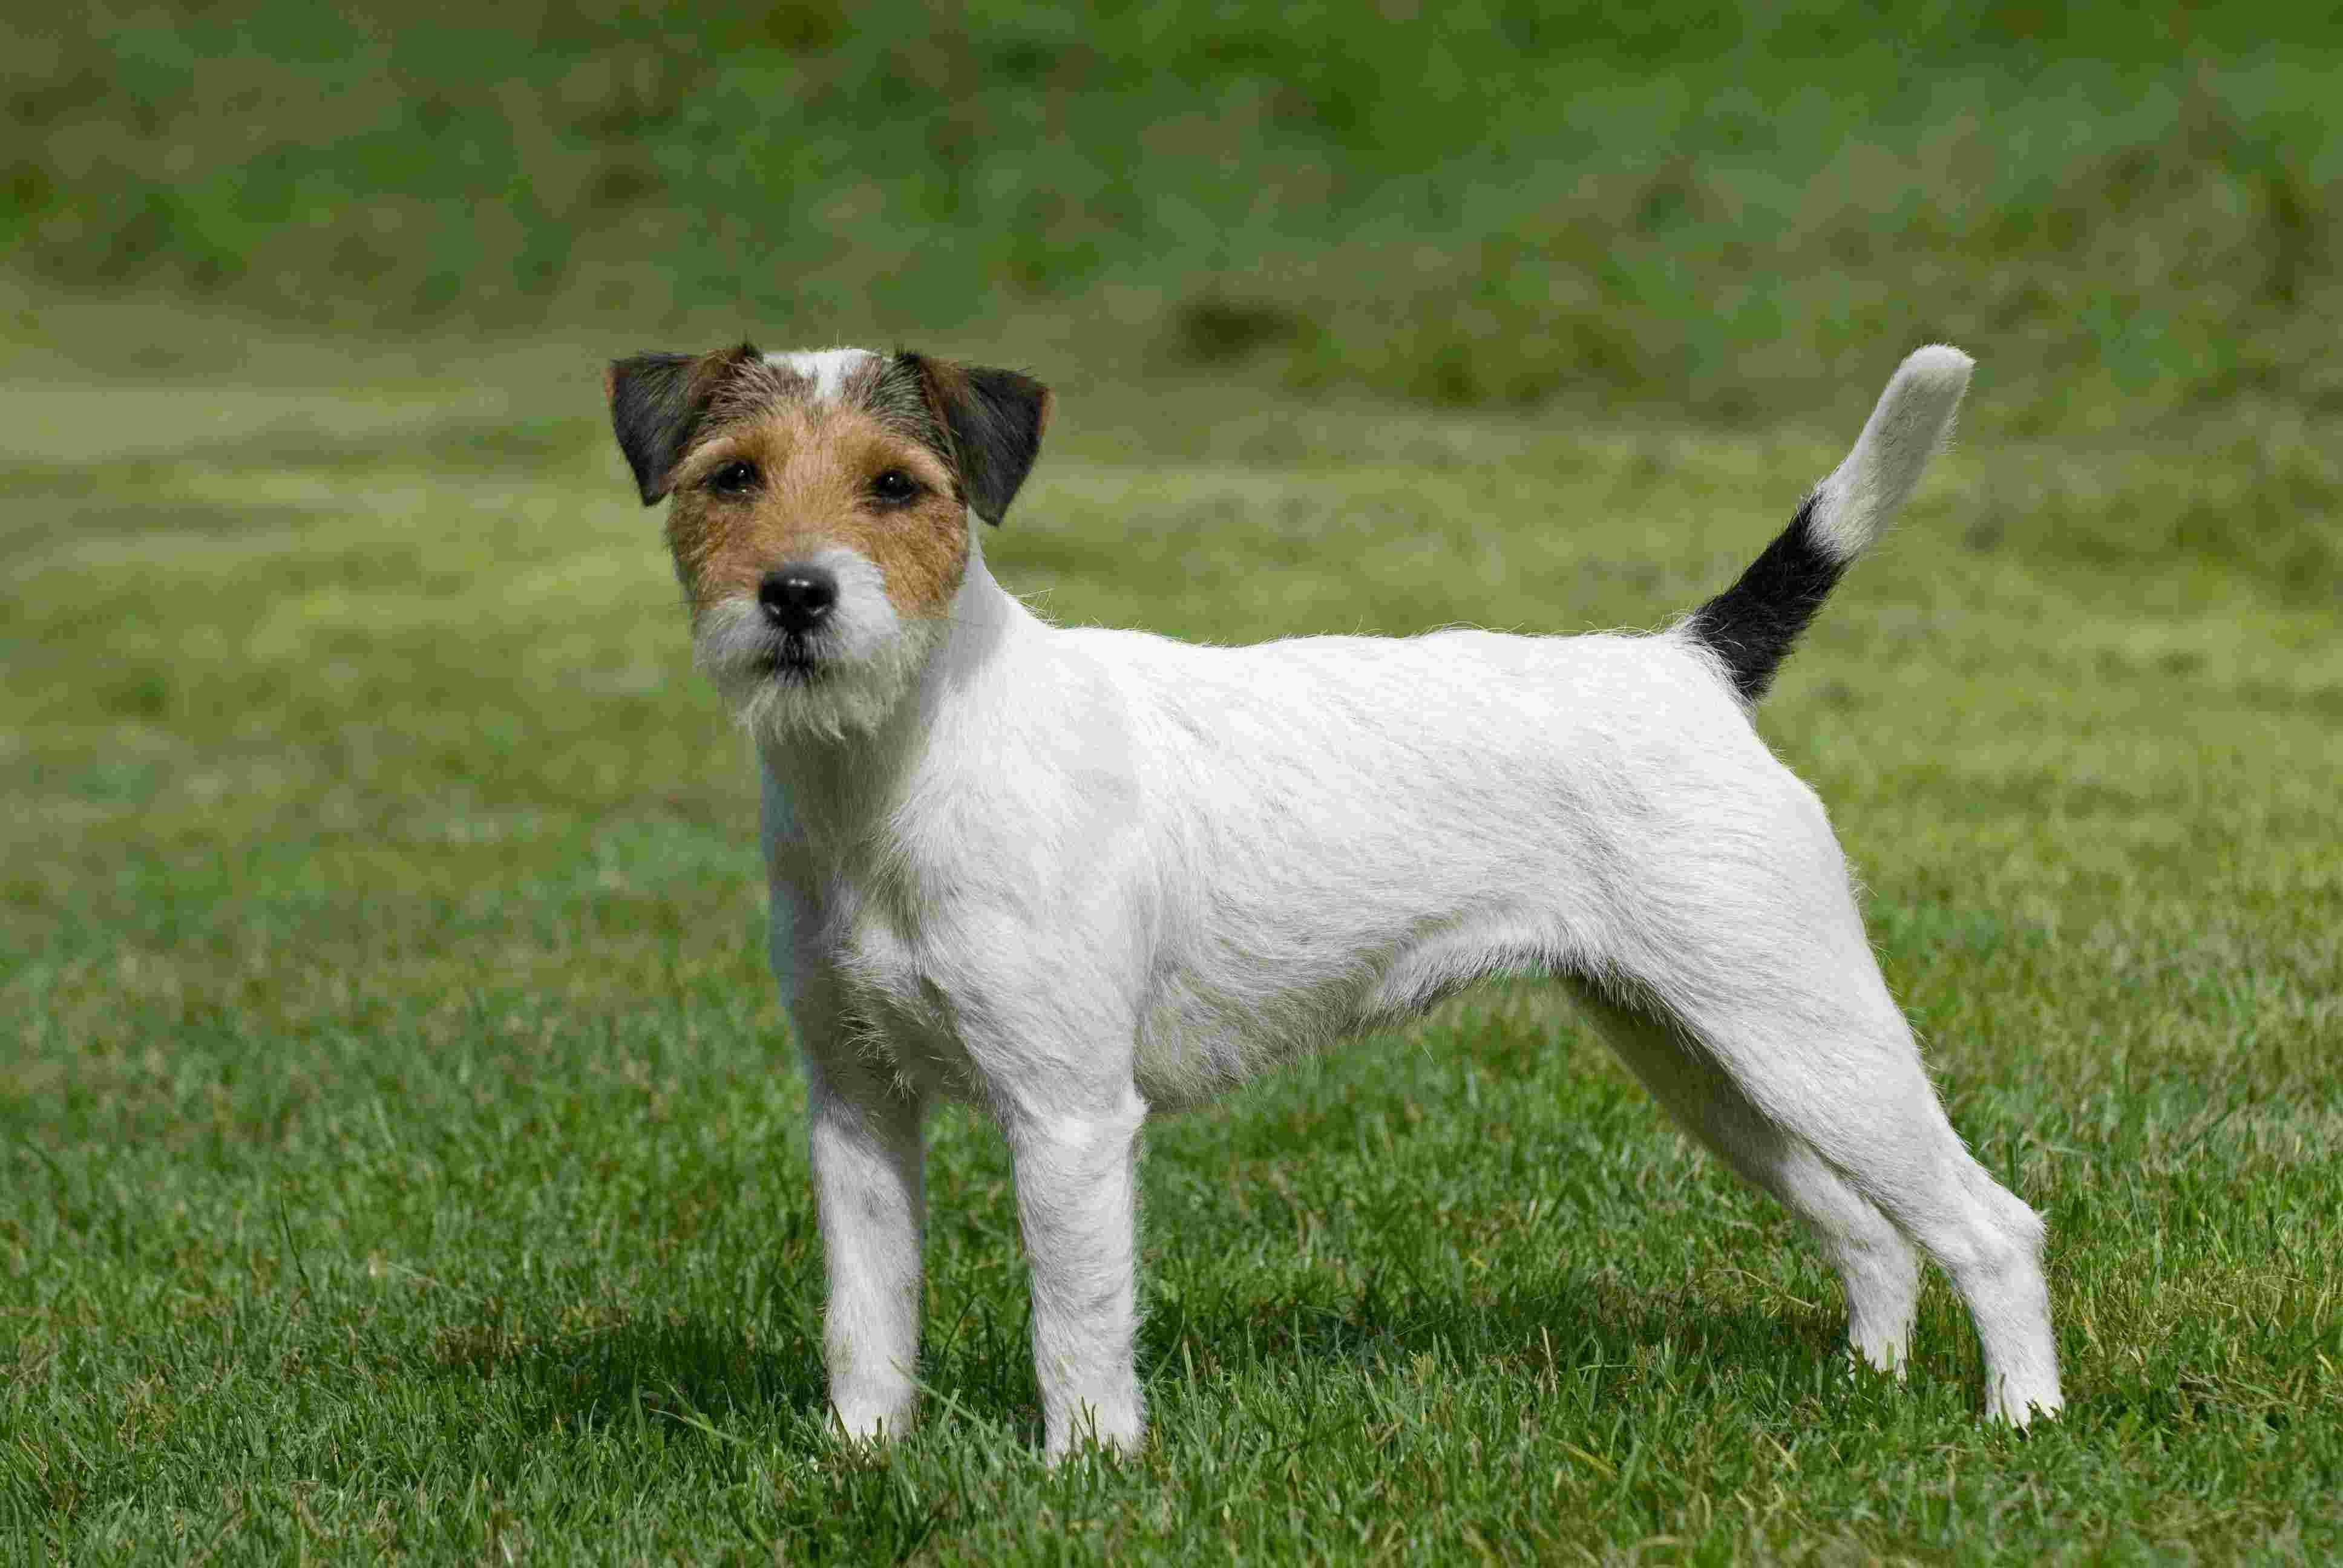 Recommended for You German Short Haired Terrier Clues - The haircut ...